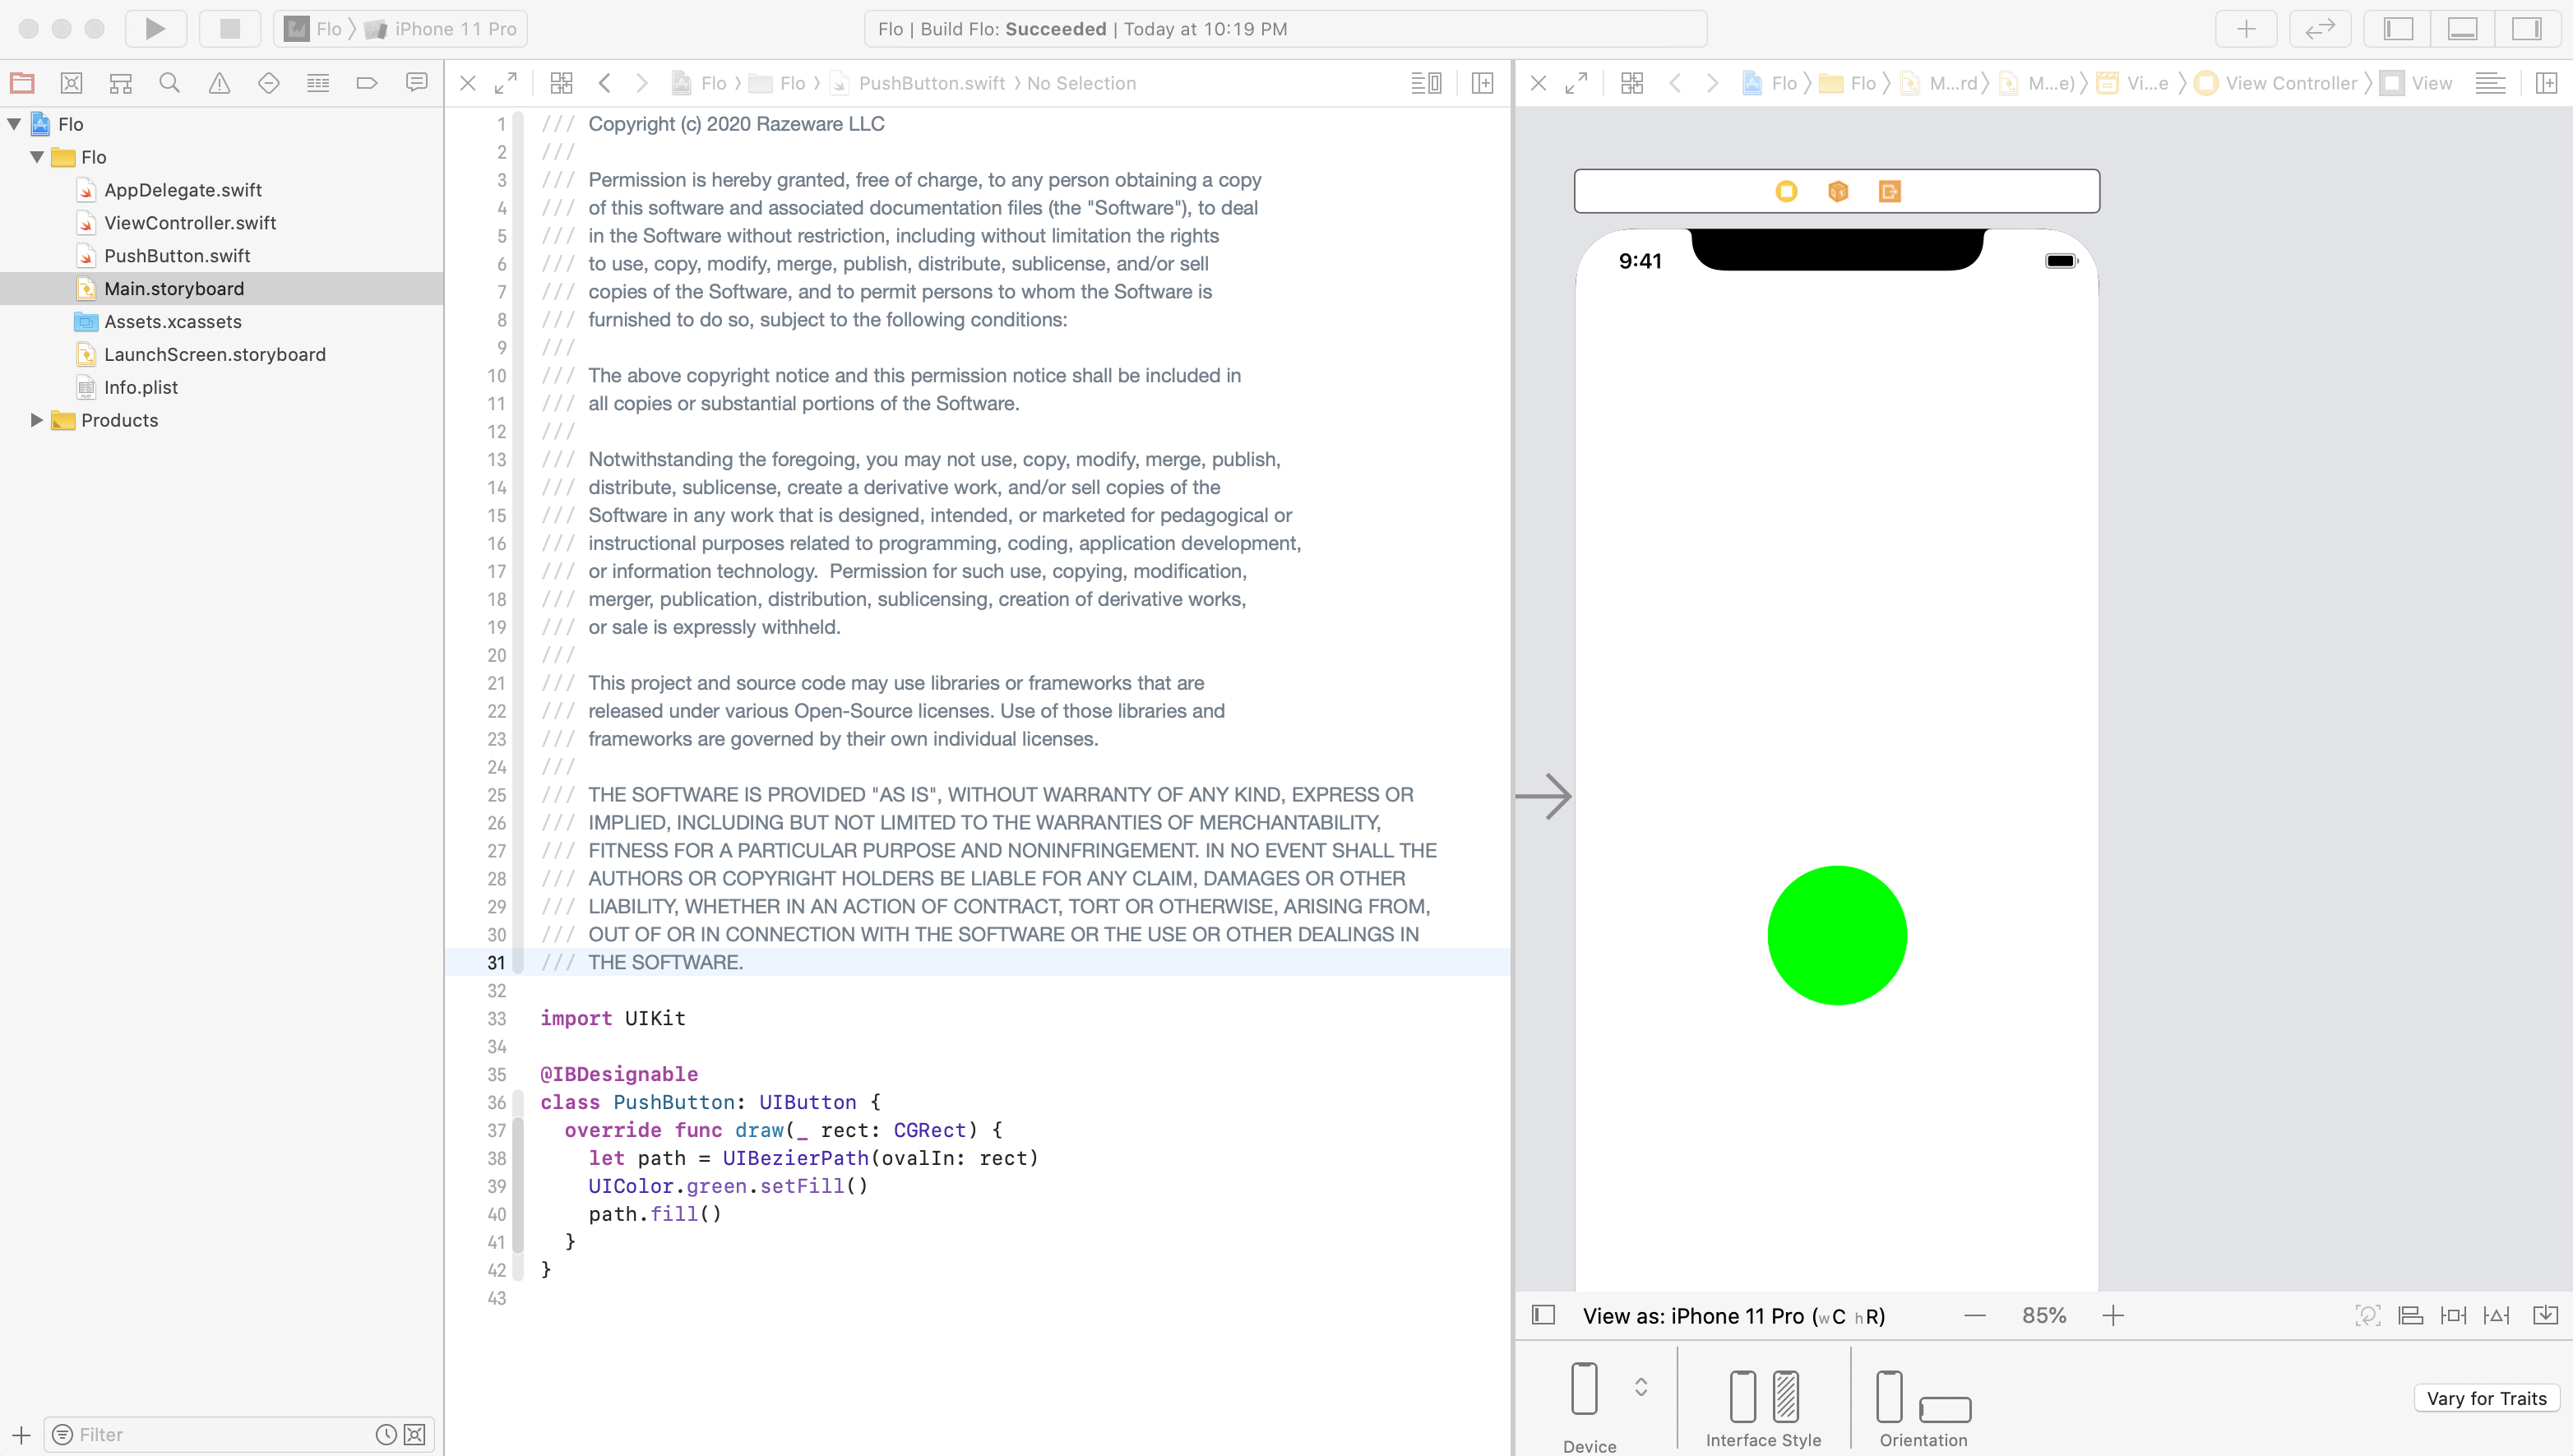 two files showing PushButton.swift and Main.storyboard